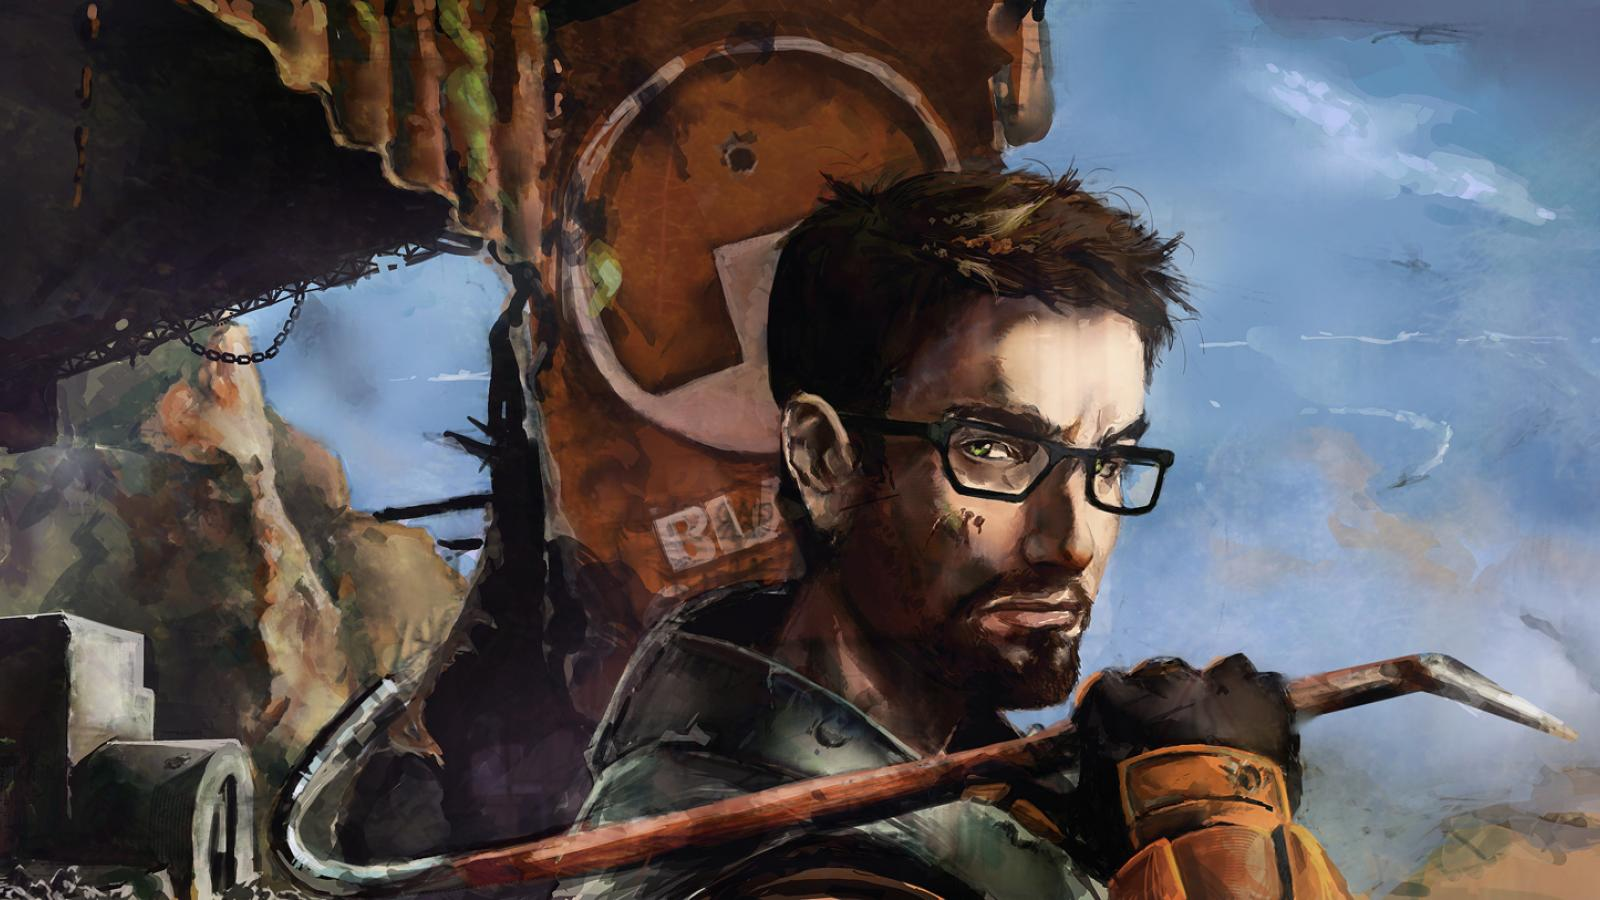 Fantastic Half Life Artworks